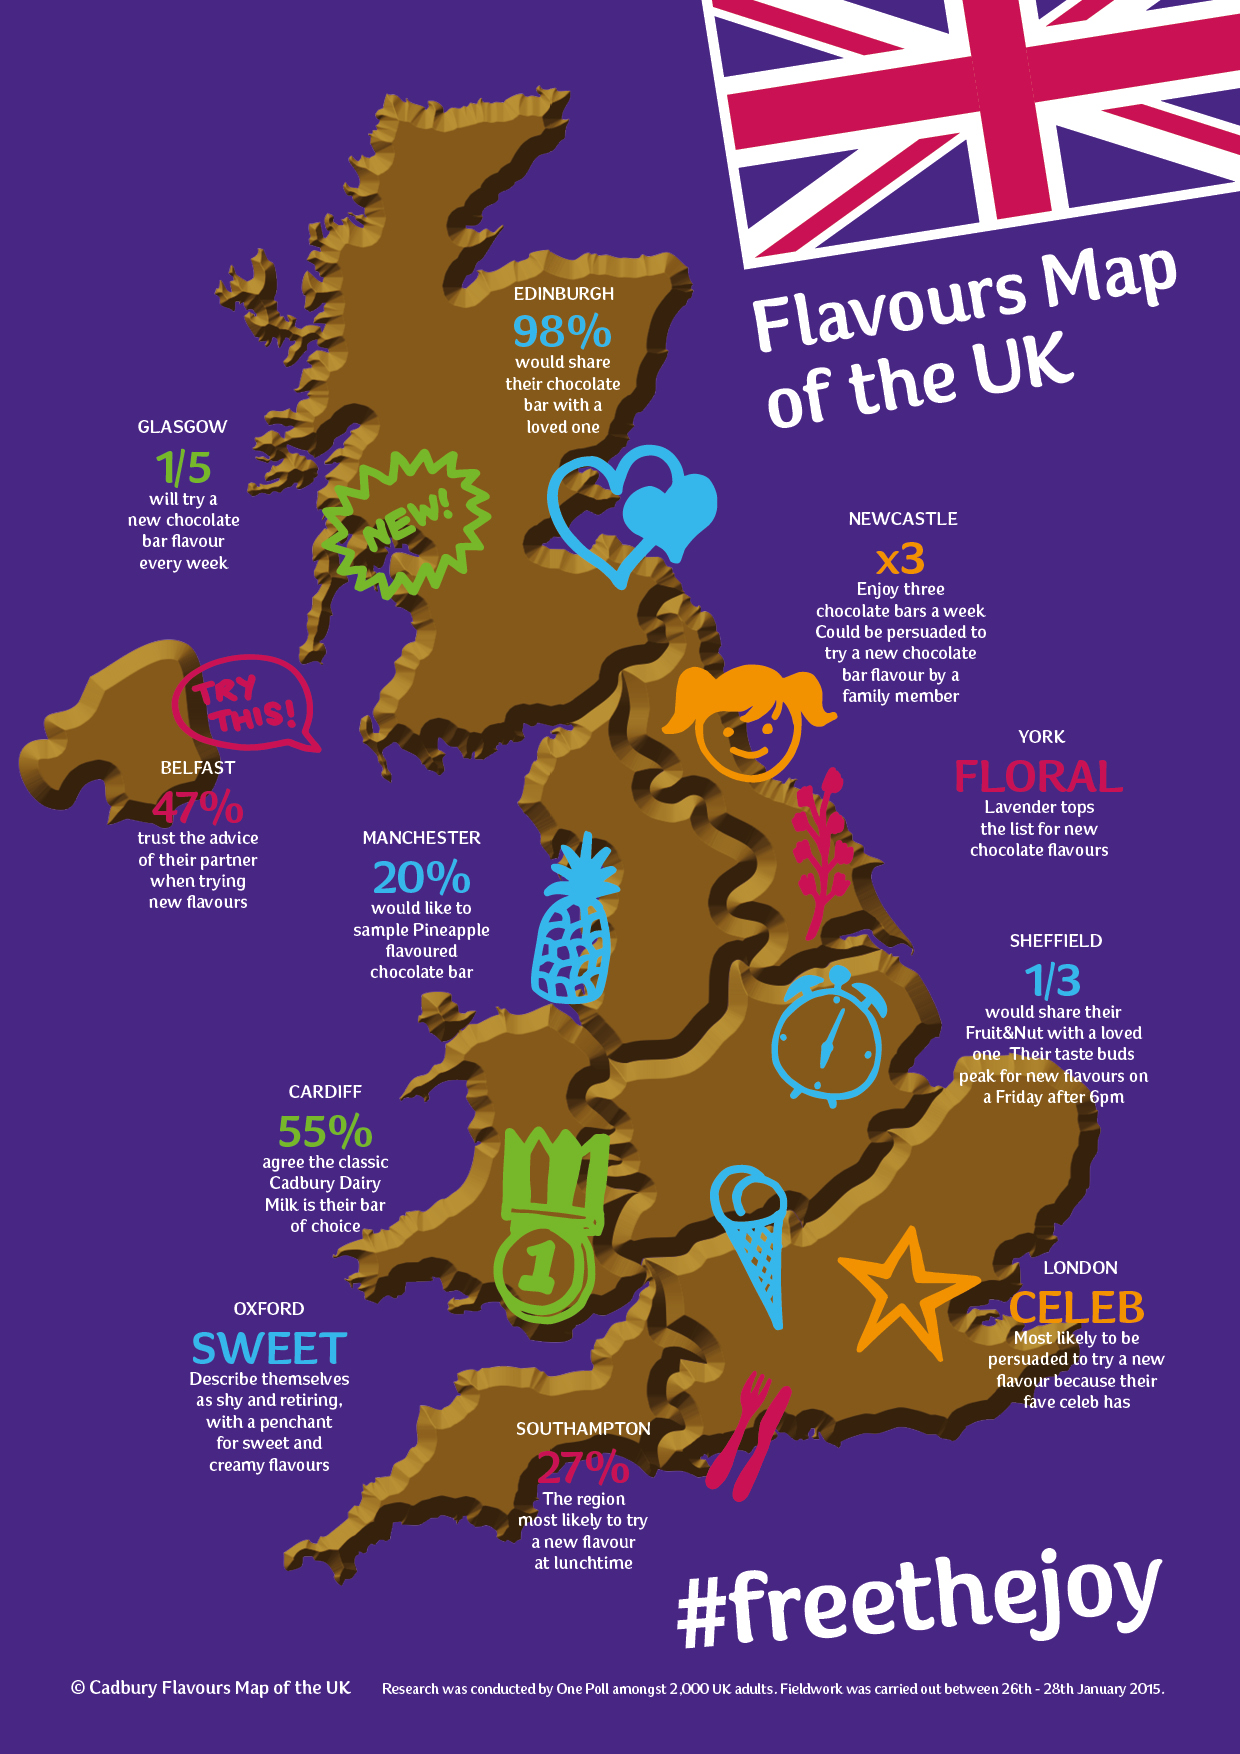 Cadbury Flavours Map of the UK